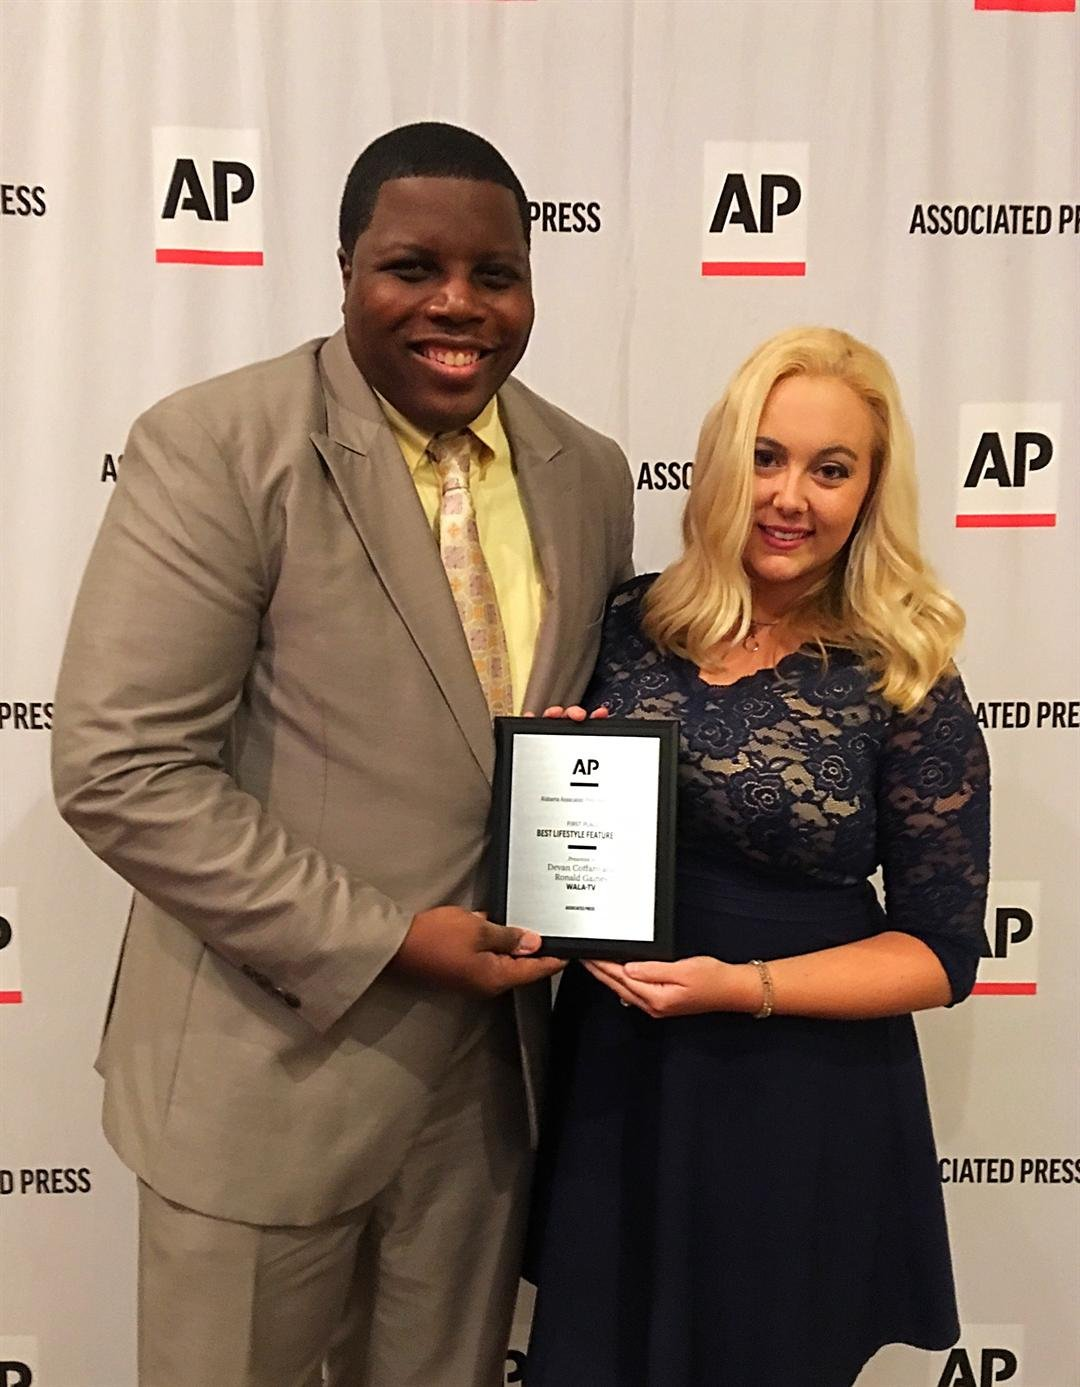 FOX10 News reporter Devan Coffaro and photographer Ronald Gaines pose with an AP Award. (FOX10 News)